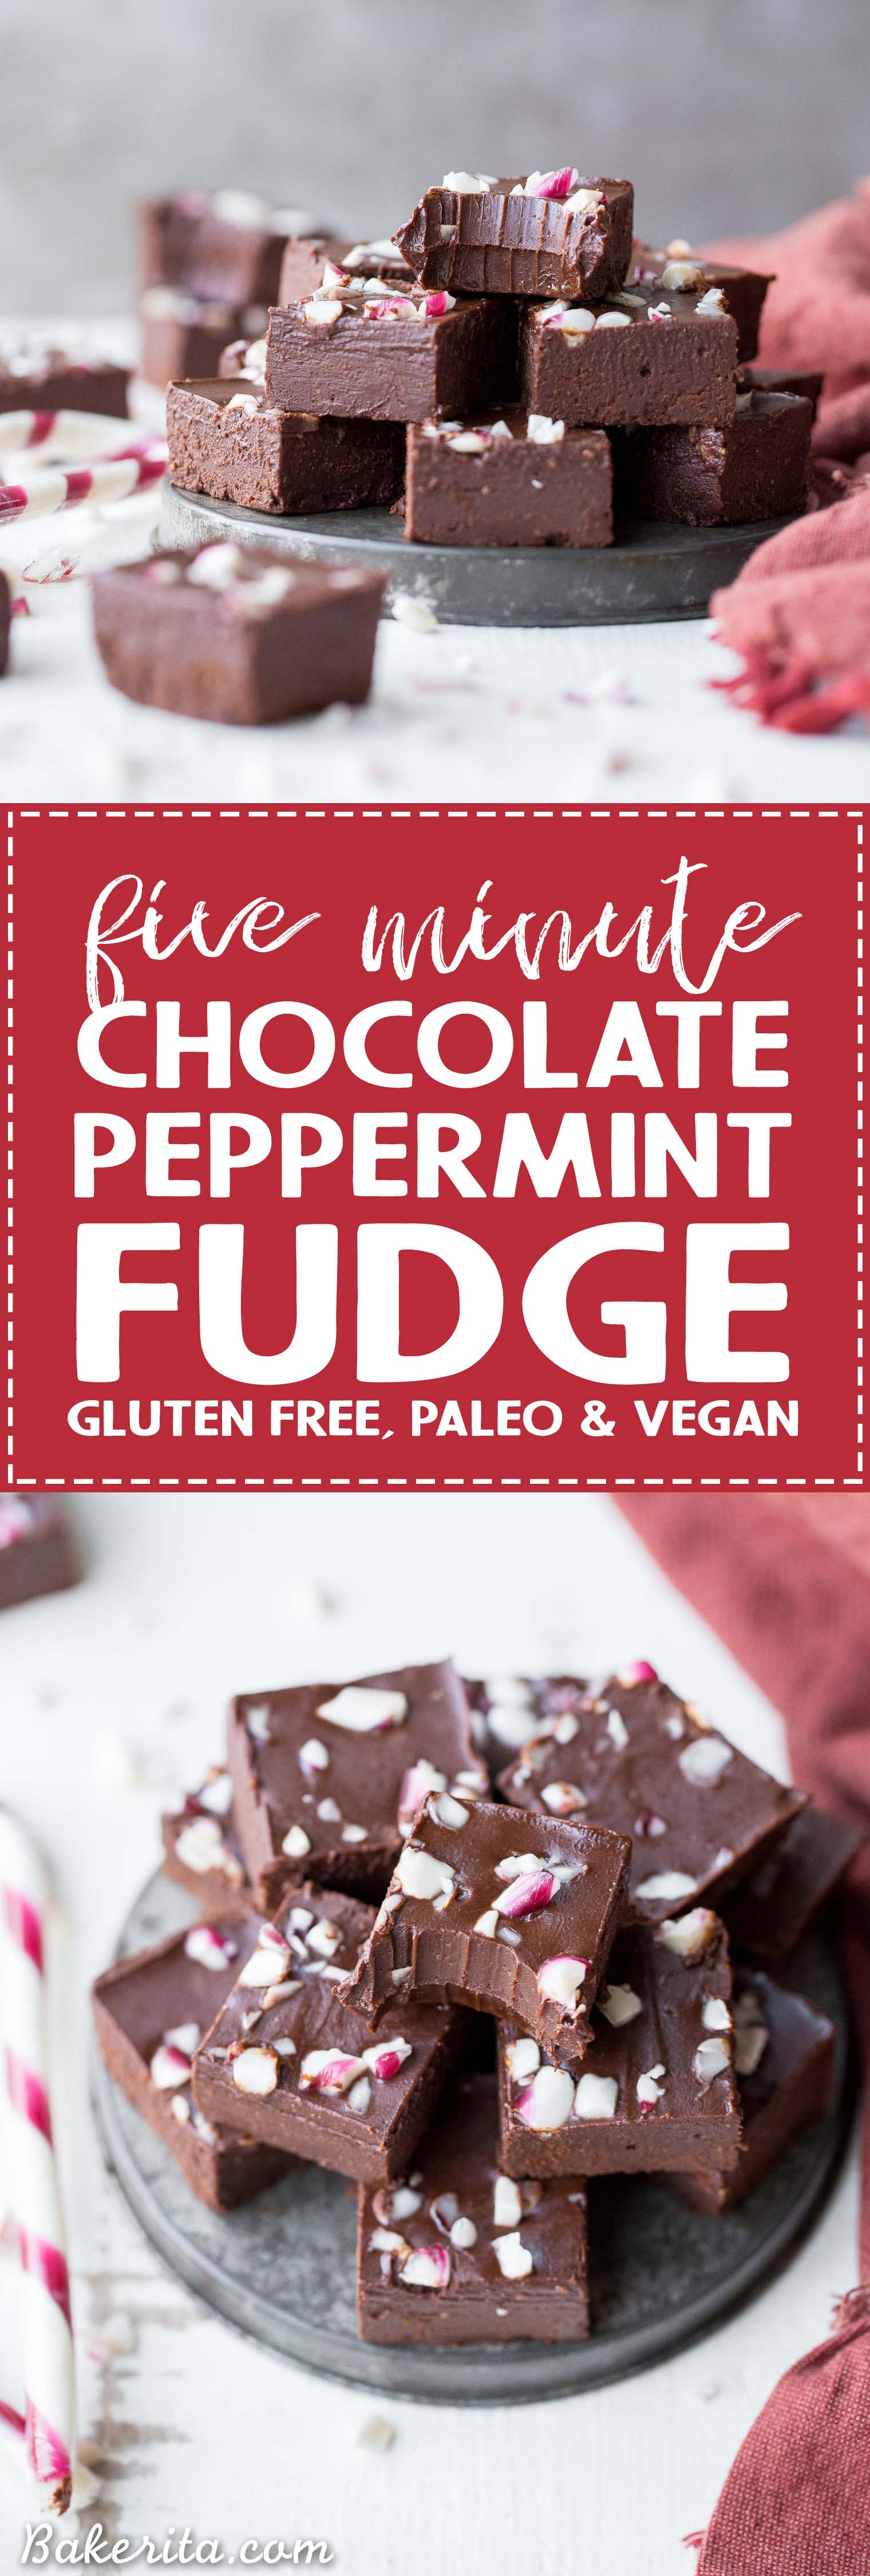 This Easy Chocolate Peppermint Fudge is the perfect, super simple holiday dessert. It's made in just five minutes with only five ingredients, and it's gluten-free, paleo, dairy-free, and vegan. This rich, super chocolatey fudge will melt in your mouth!